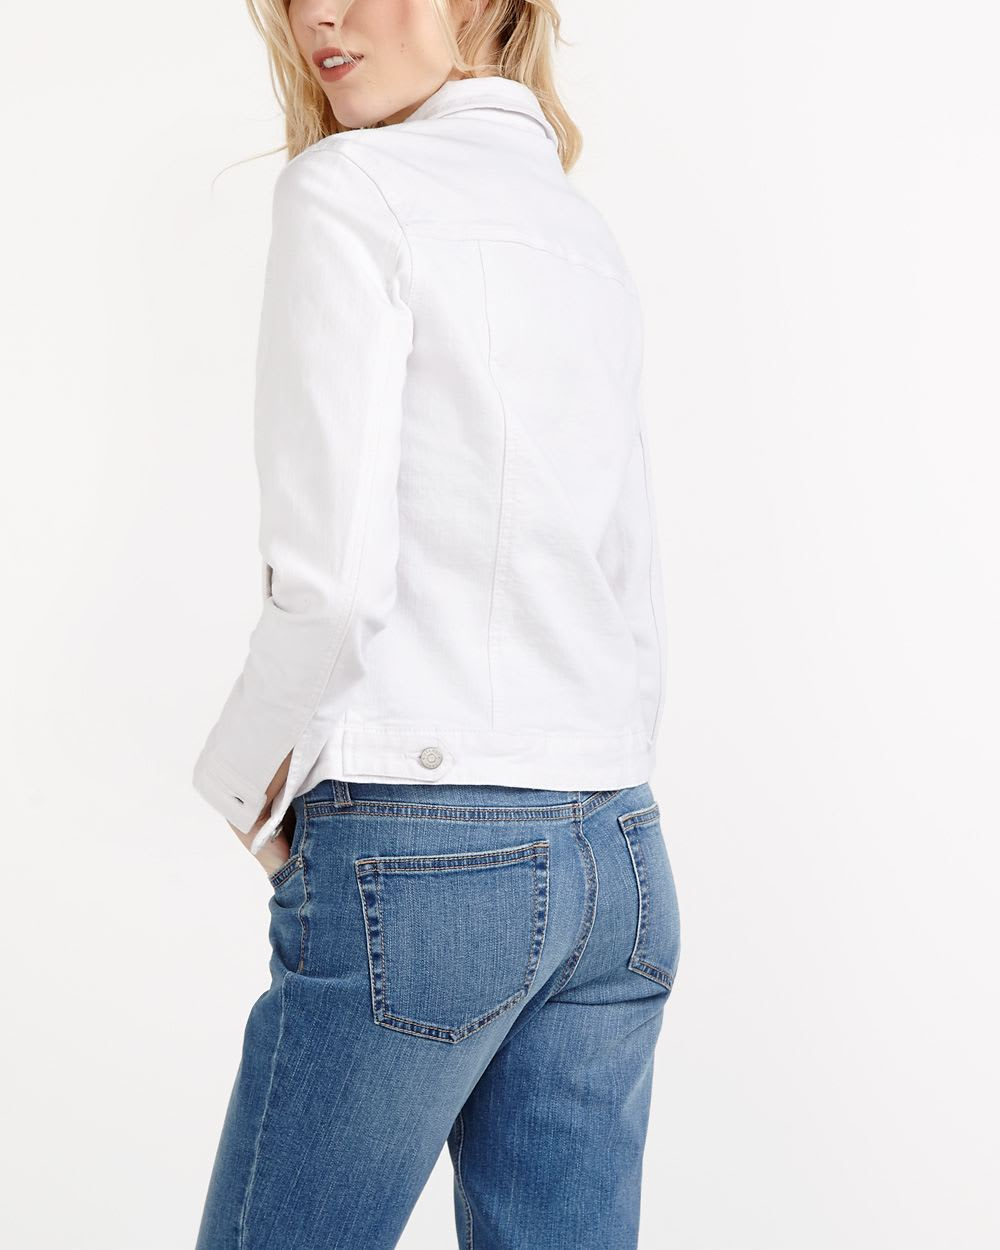 White Jean Jacket | Women | Reitmans